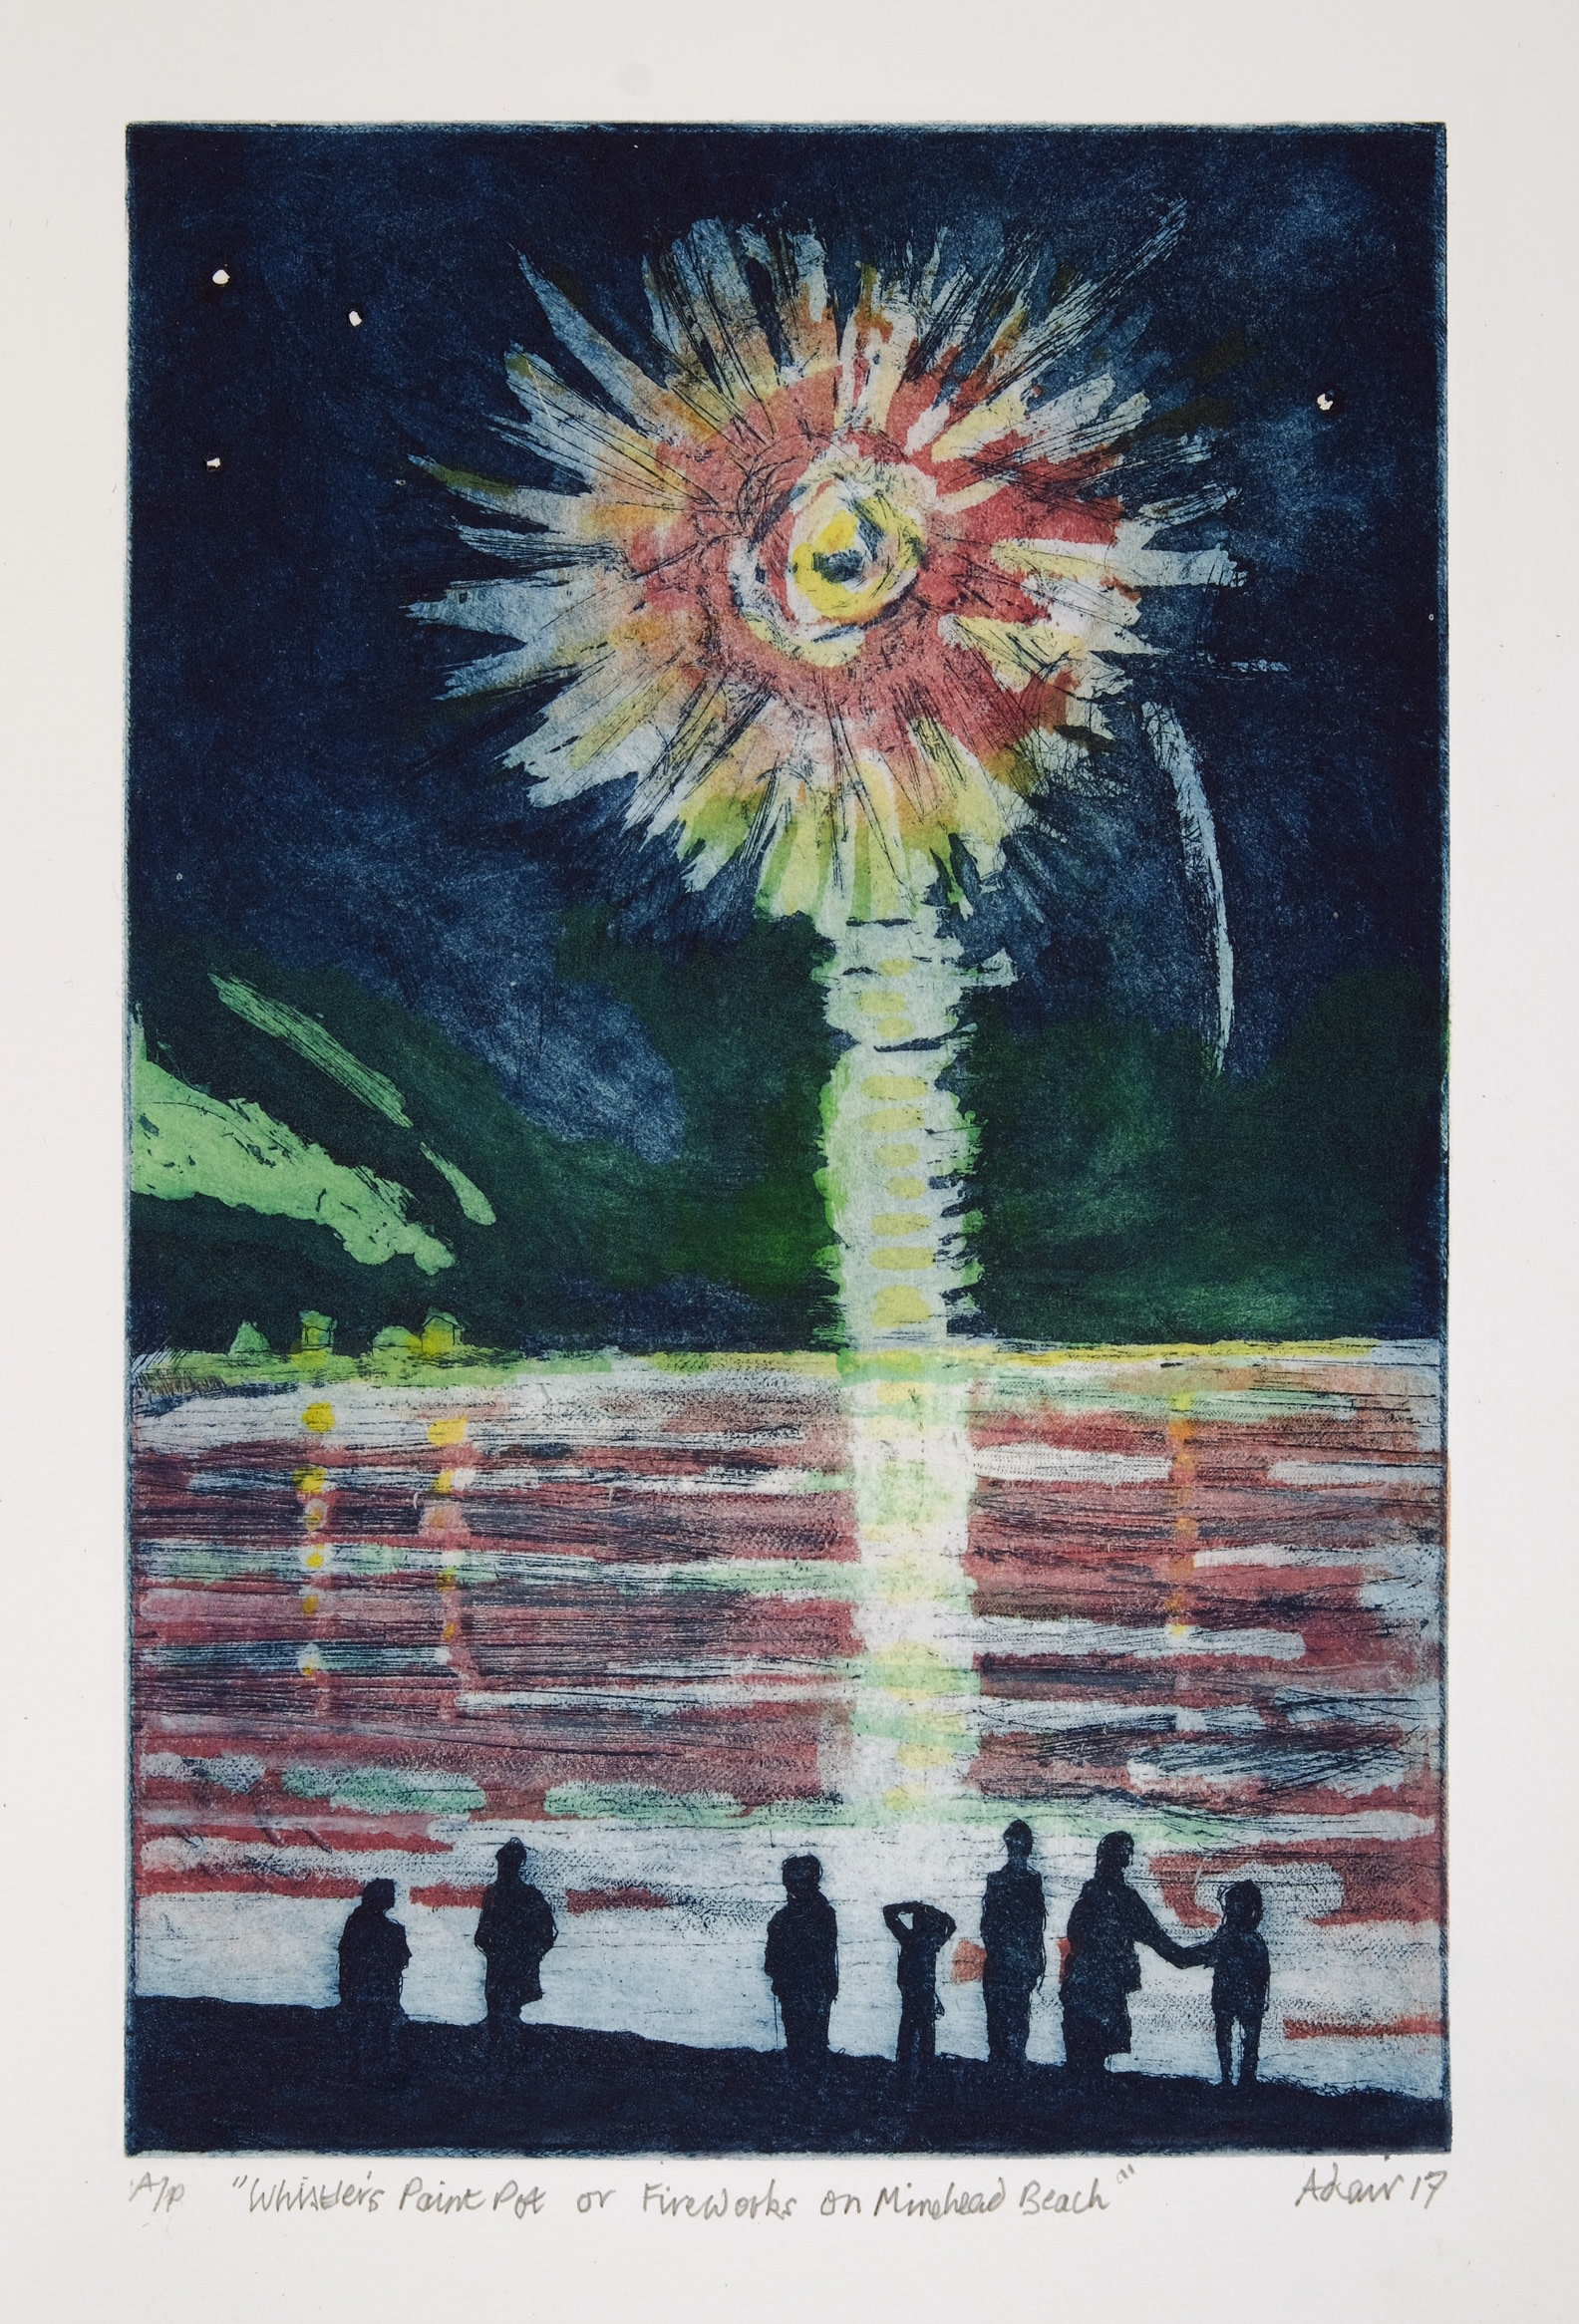 """<span class=""""link fancybox-details-link""""><a href=""""/exhibitions/11/works/image_standalone134/"""">View Detail Page</a></span><p>HILARY ADAIR RE</p><p></p><p><em>Whistler's Paint Pot, or fireworks on Minehead Beach</em>, 2017</p><p>etching & aquatint</p><p>Inspired by JAM Whistler</p><p></p><p>Part of the Print REbels Portfolio</p><p></p><p>""""<b>James Abbott McNeill Whistler (1834-1903)</b> became famous for his legal dispute with Ruskin, who accused him of 'flinging a paint pot in the public's face' with his innovative semi-abstract work <i>Falling Rocket</i>. Whistler won, but was awarded one farthing for costs.""""</p>"""